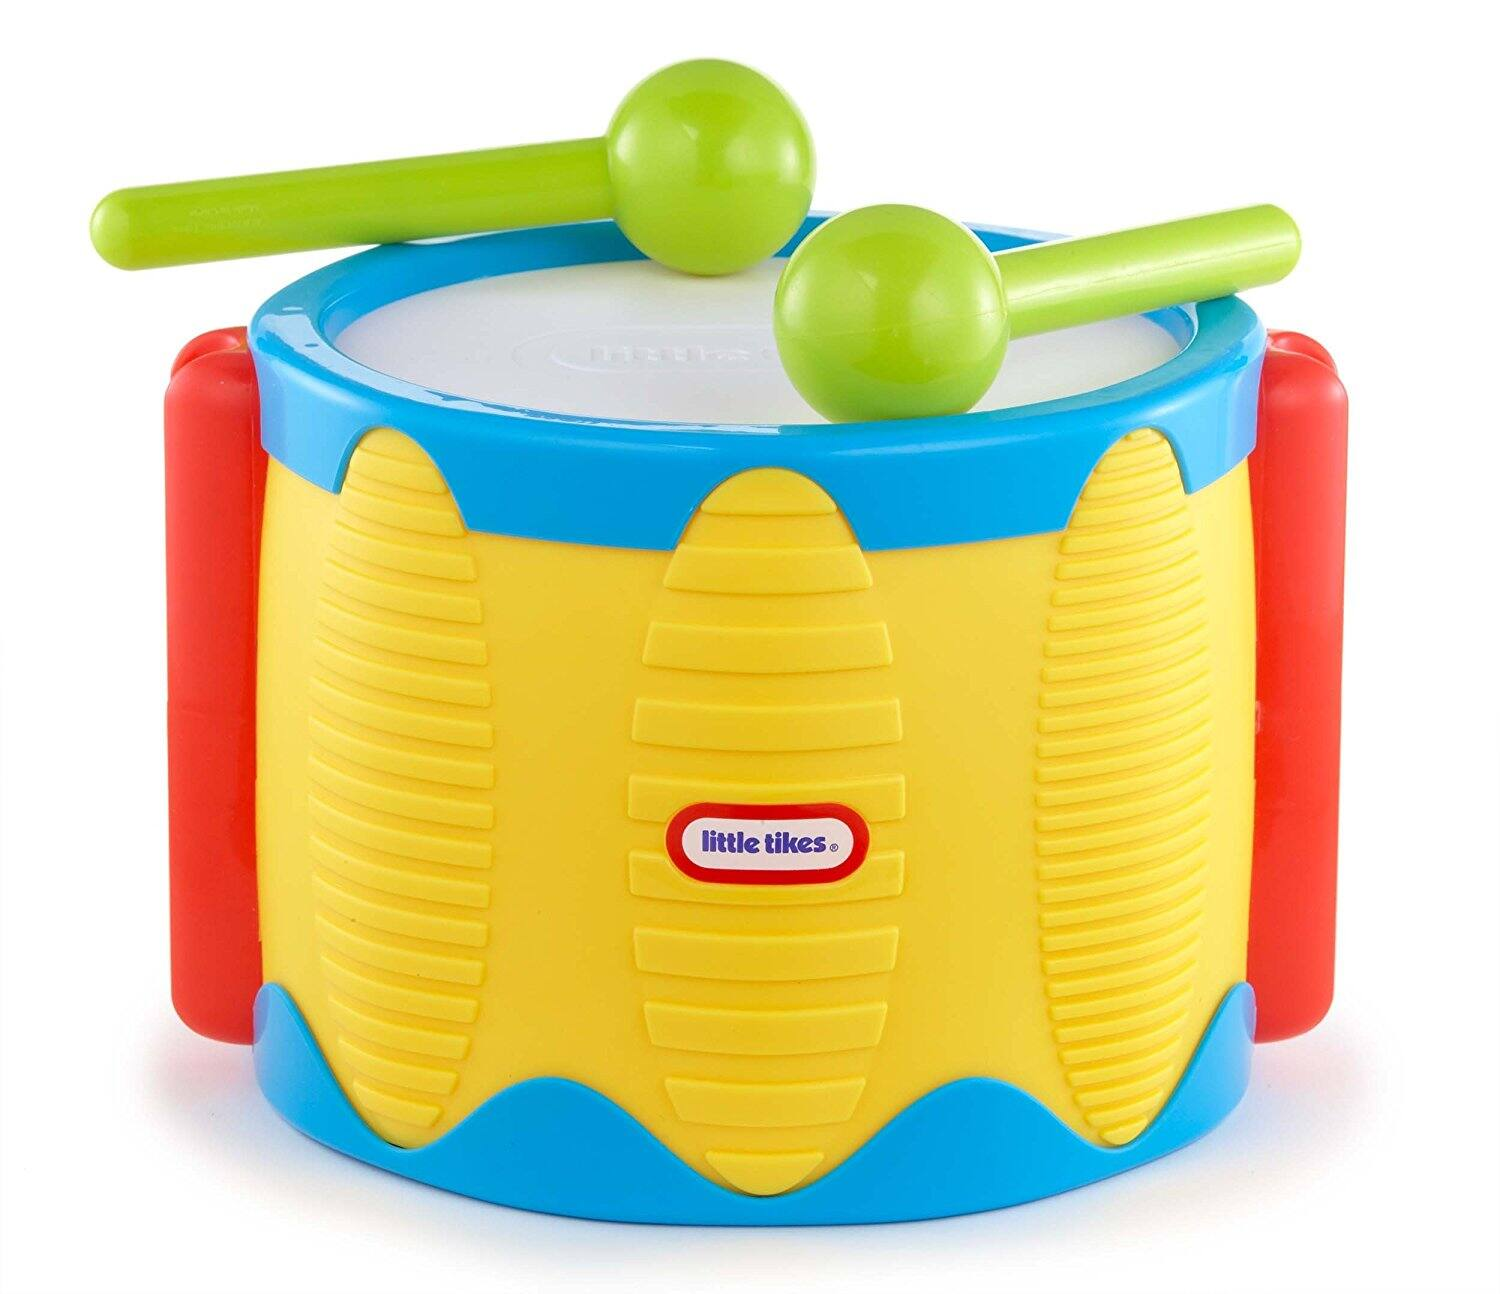 Little Tikes Toy Sale : Little Tikes Tap-A-Tune Drum $8.50